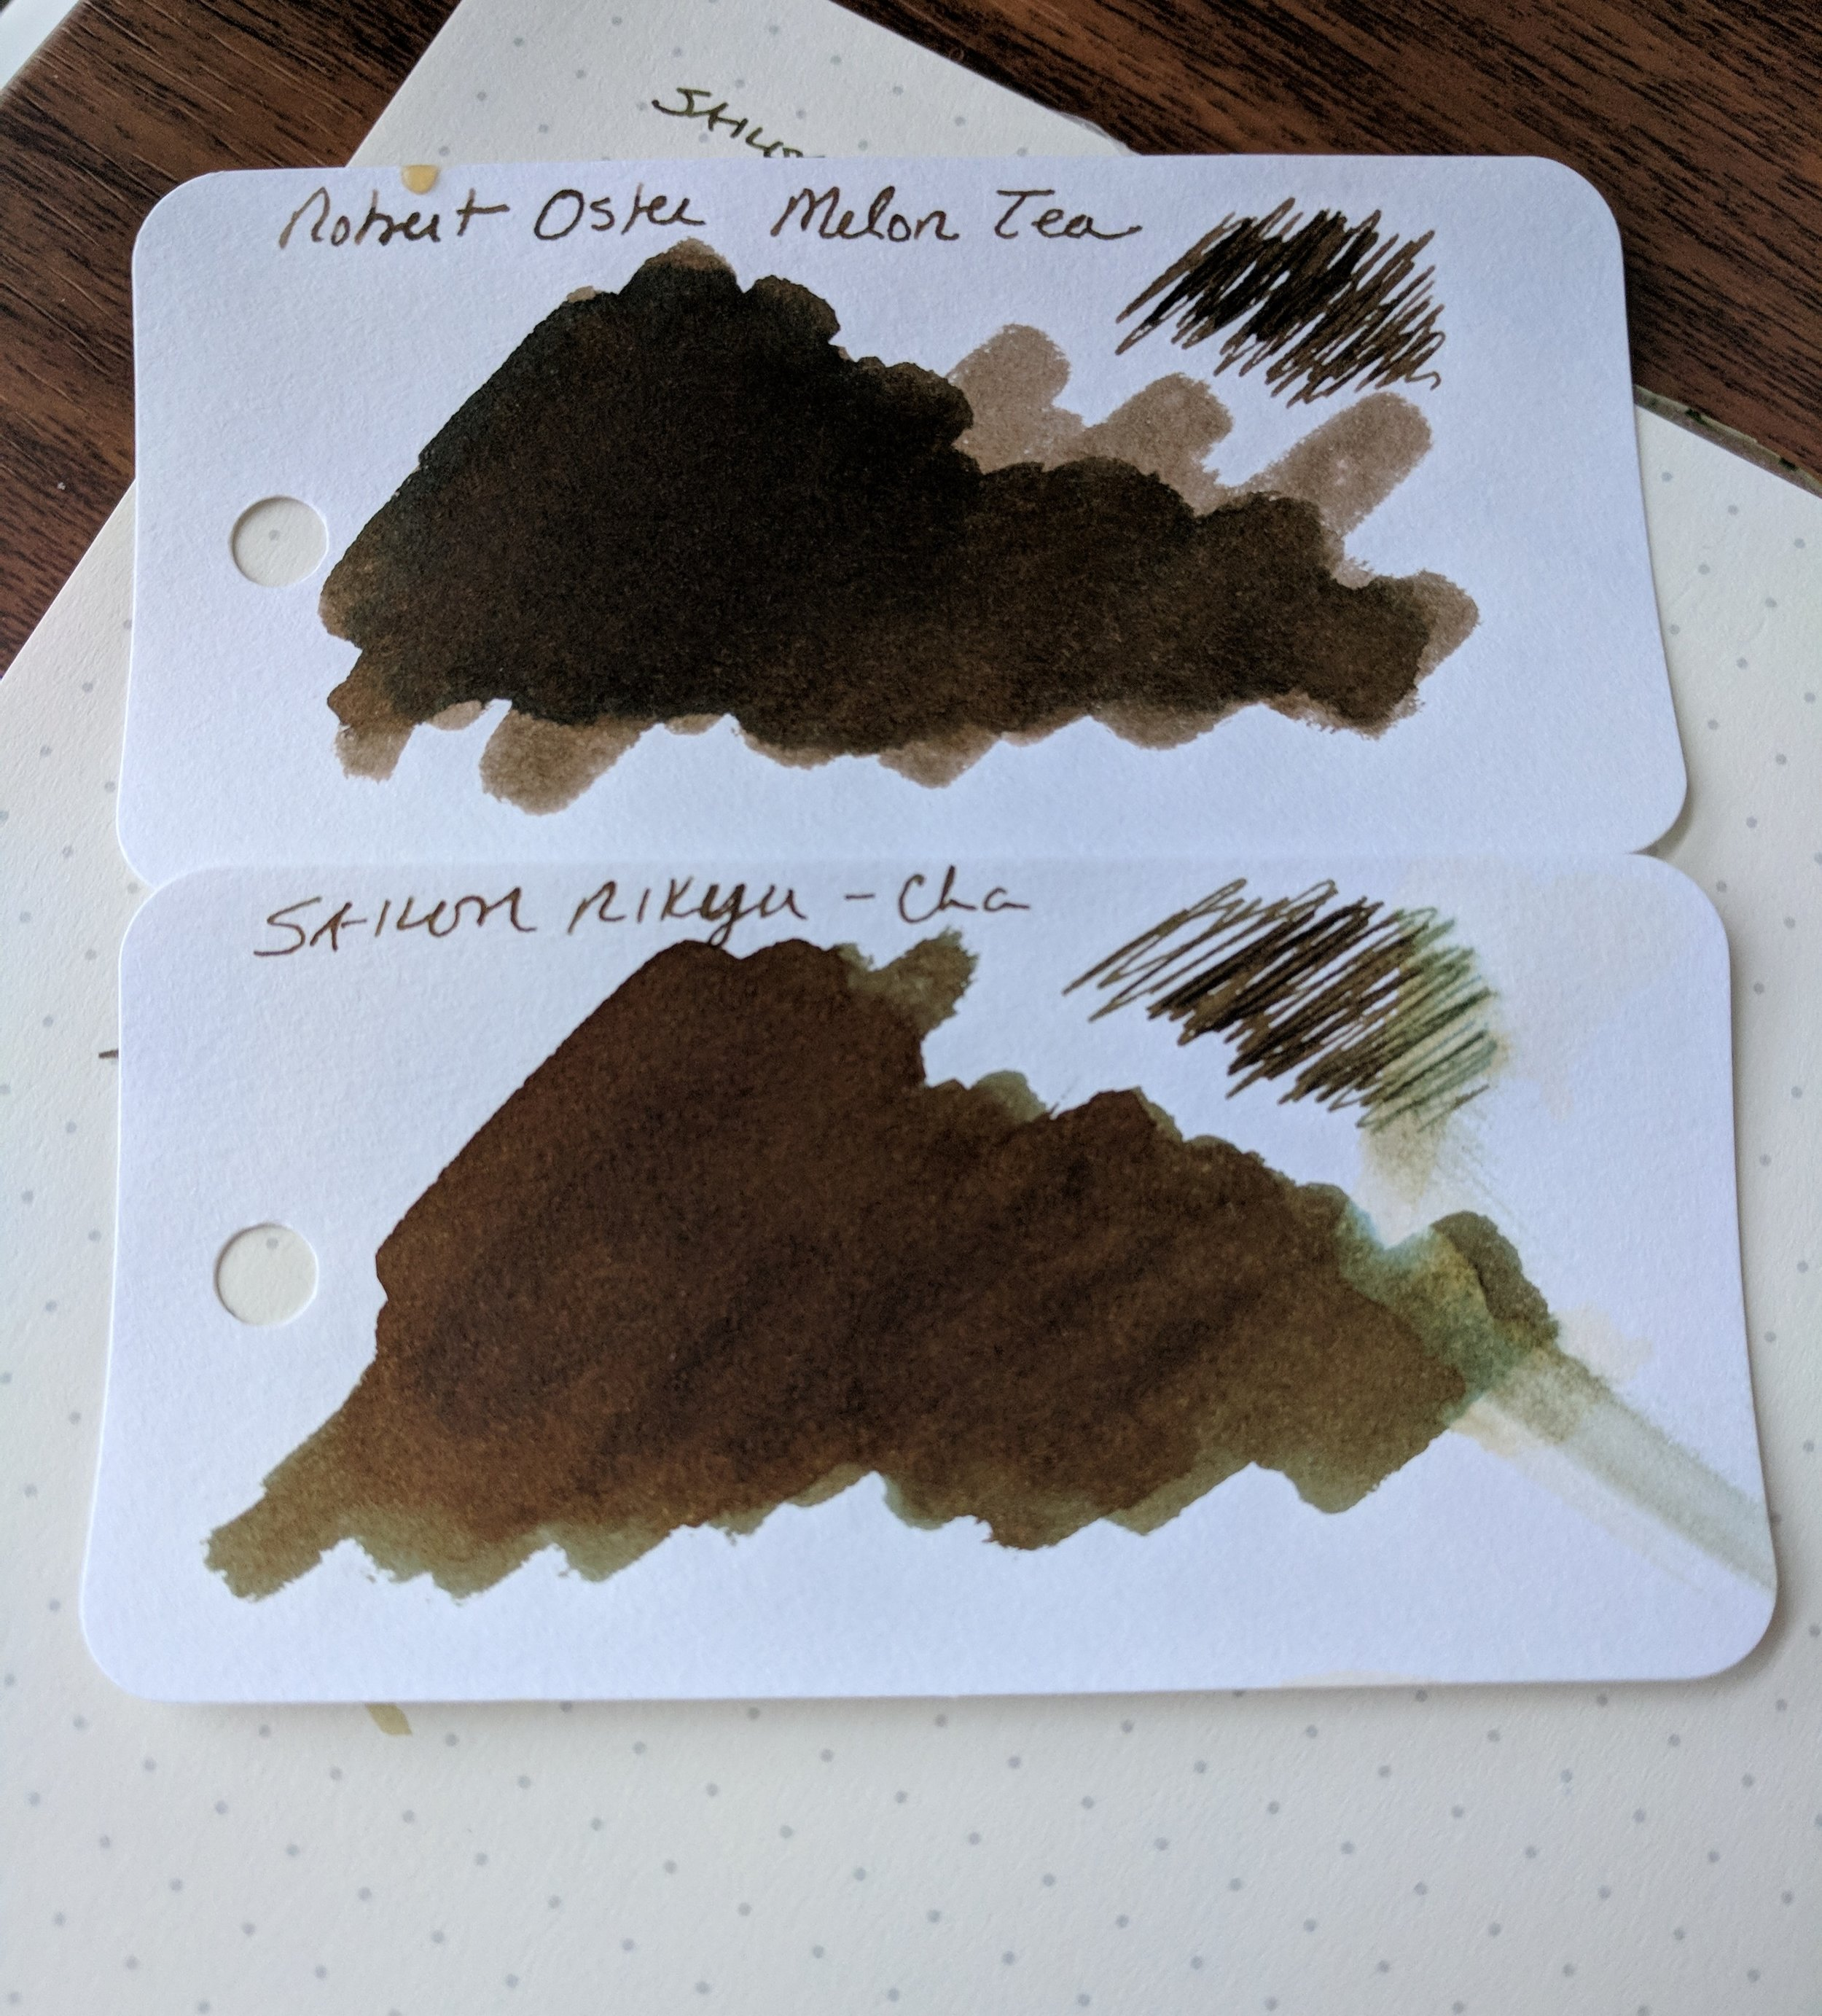 Robert Oster Signature Melon Tea dries quite a bit darker. You can see the green (and even a bit bluish) undertones to the Rikyu-Cha from where I dripped coffee on the swab.  Intentionally, I promise.